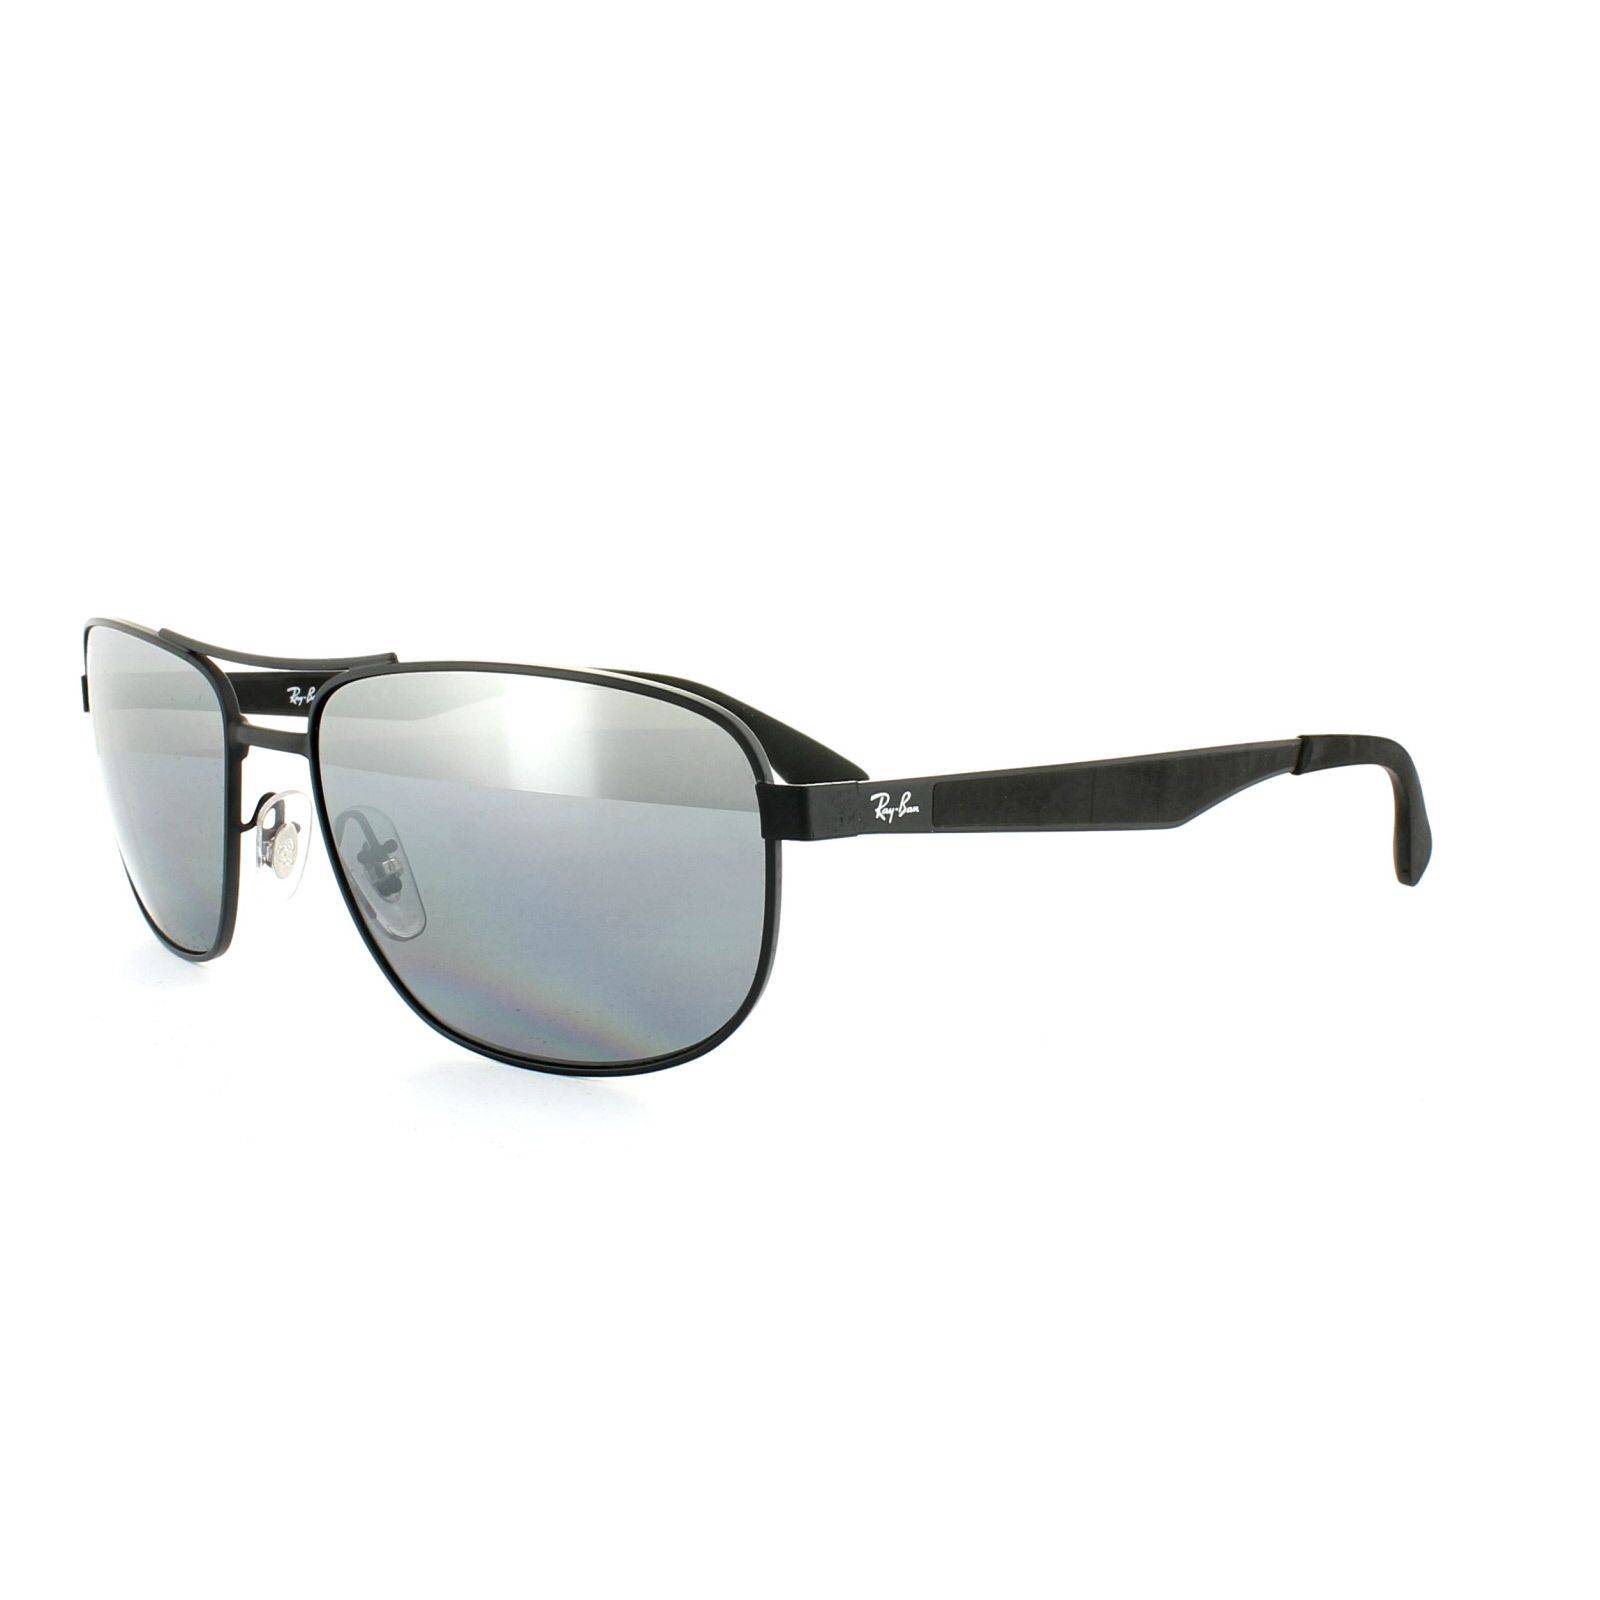 99d6101d61 Sentinel Ray-Ban Sunglasses 3528 006 82 Matt Black Silver Mirror Polarized  58mm